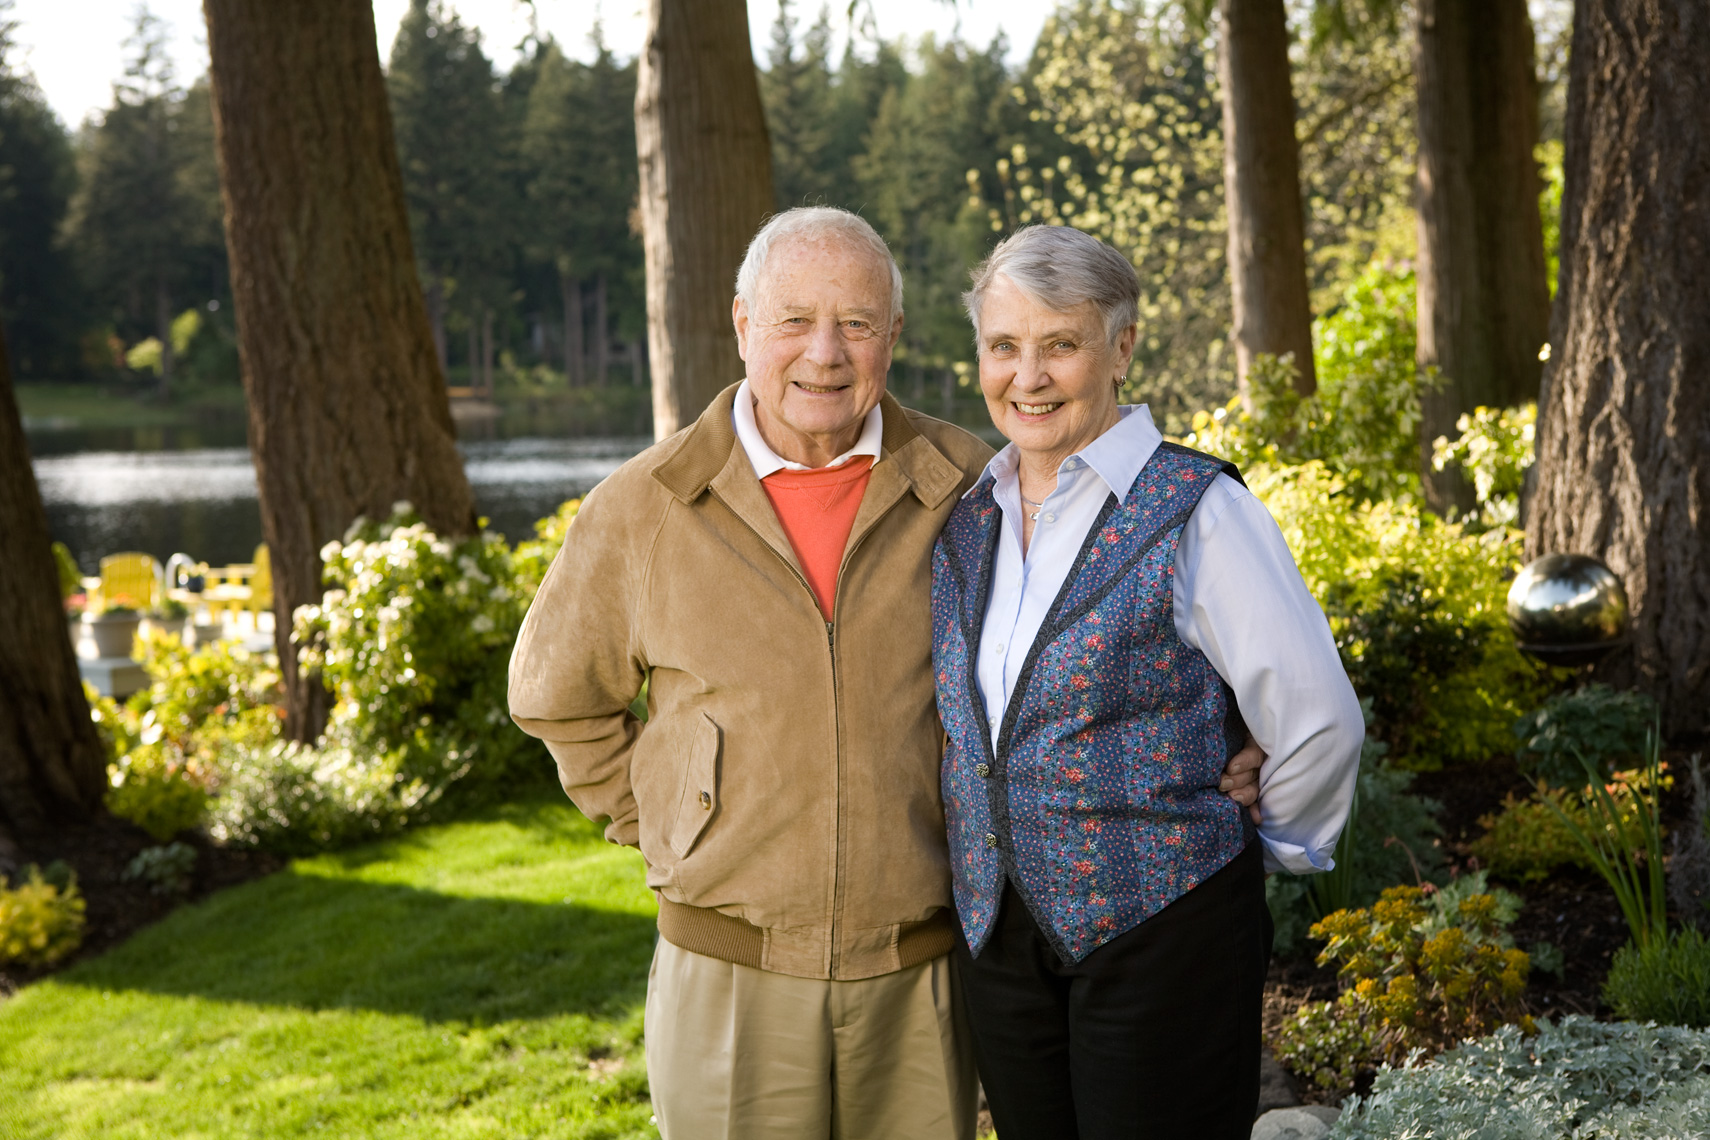 Couple standing in backyard with late afternoon light and large trees.